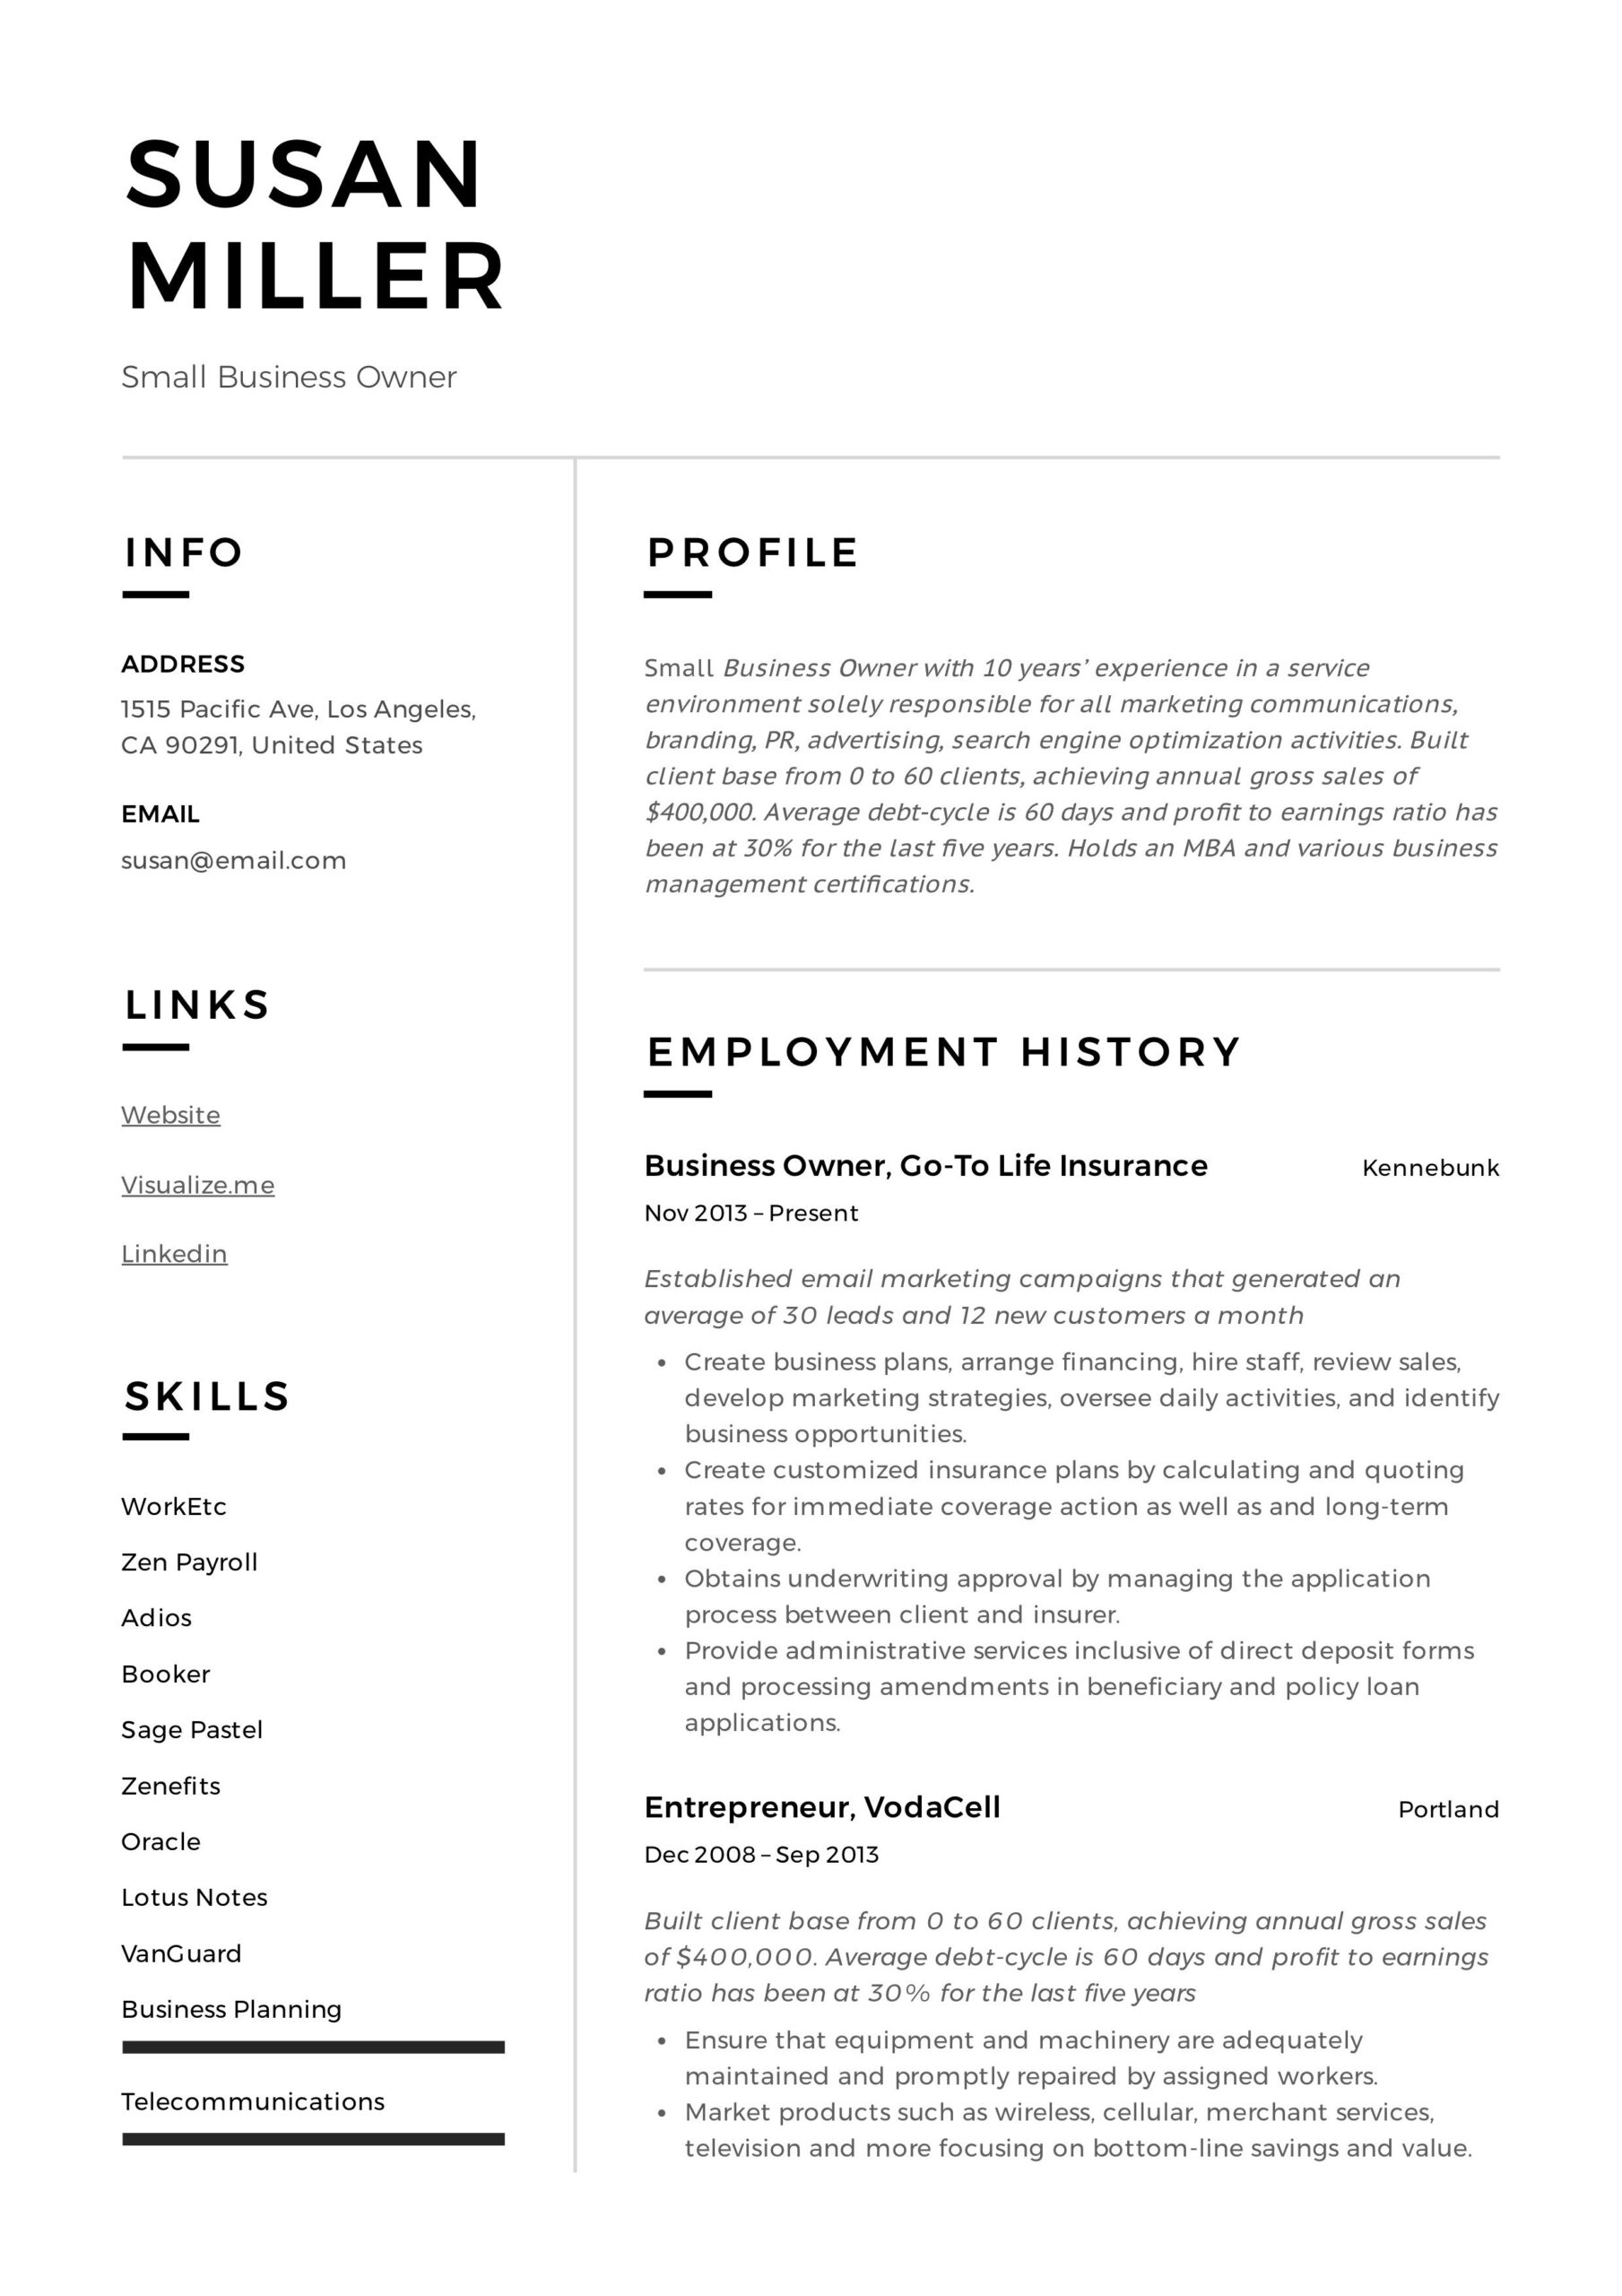 small business owner resume sample examples guide chef account executive keywords animal Resume Account Executive Resume Keywords